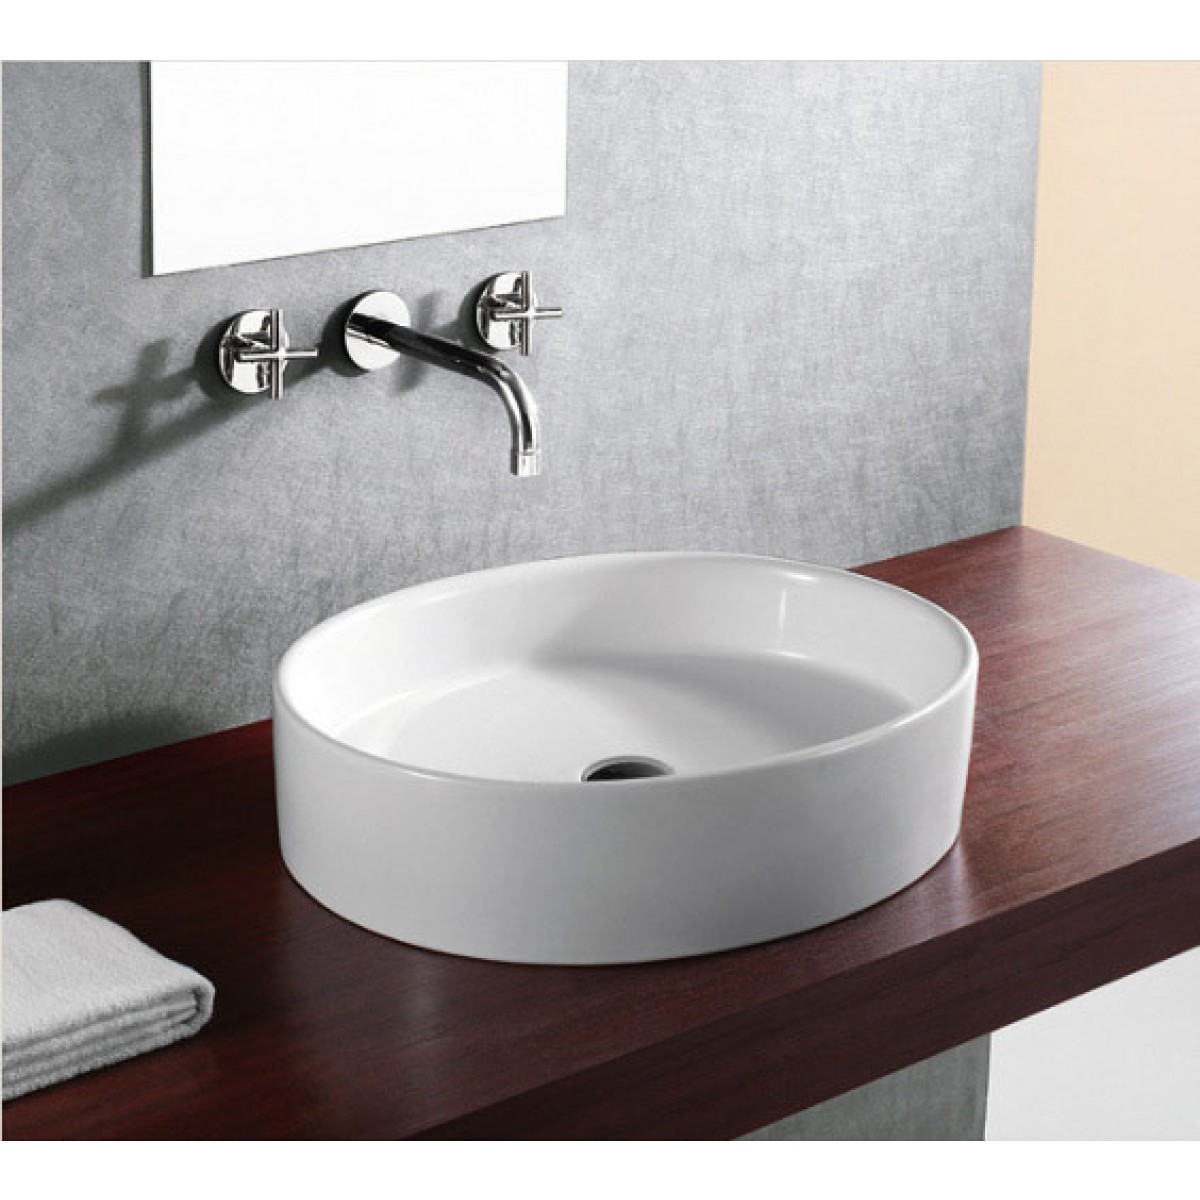 14 inch bathroom sink european style oval shape porcelain ceramic bathroom 15253